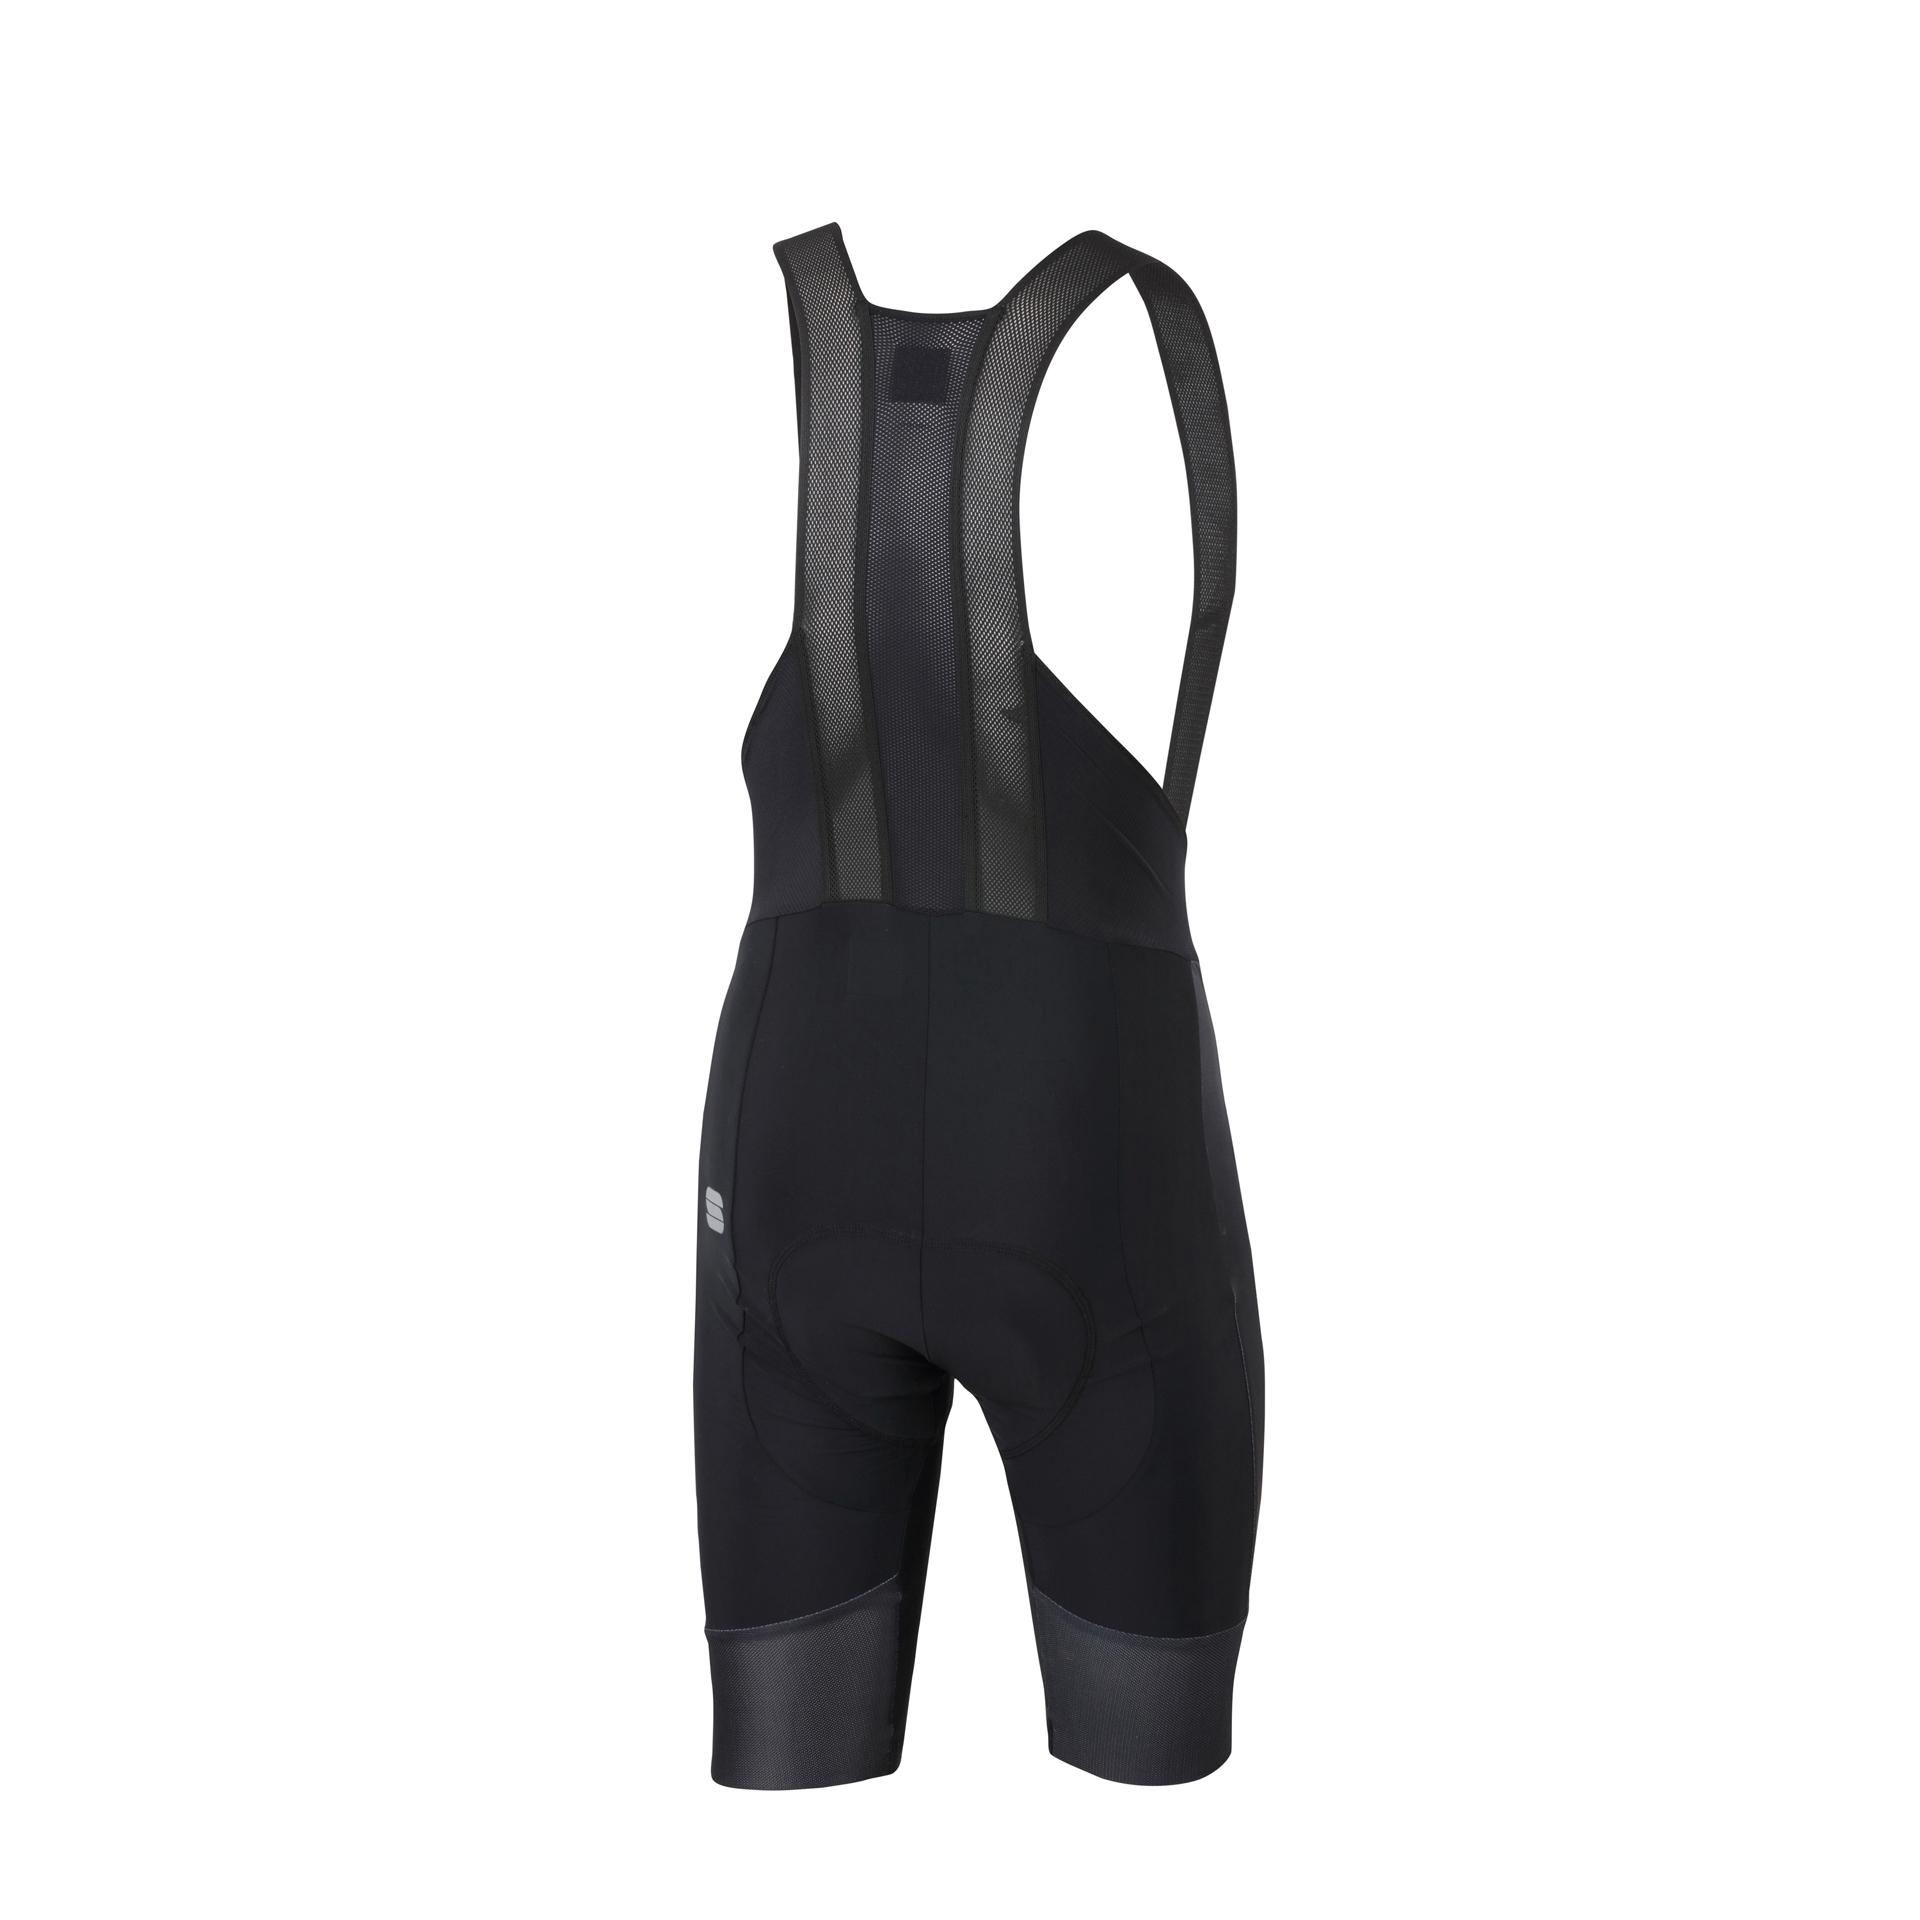 Sportful Fietsbroek met bretels - koersbroek Heren Zwart  / SF Gts  Bibshort-Black